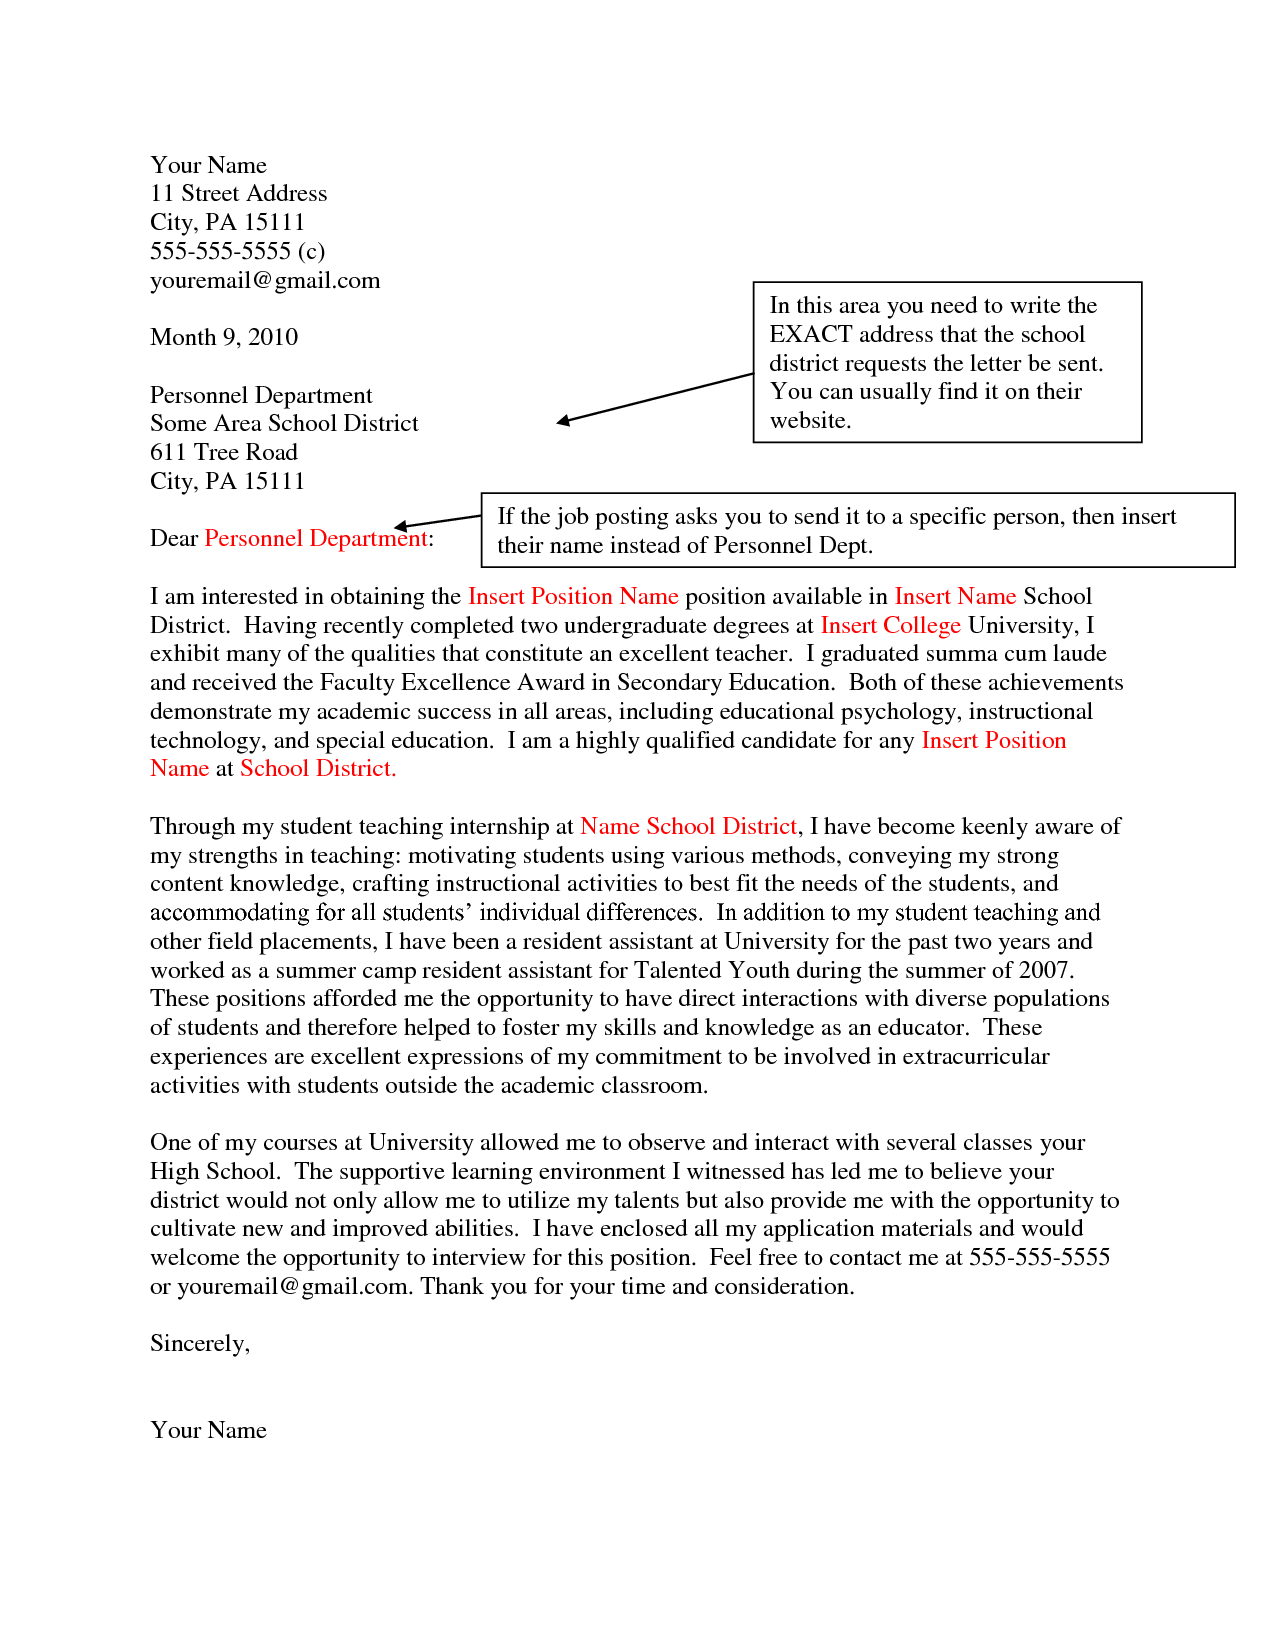 Job Application Letter For College Teacher Five Tips Writing